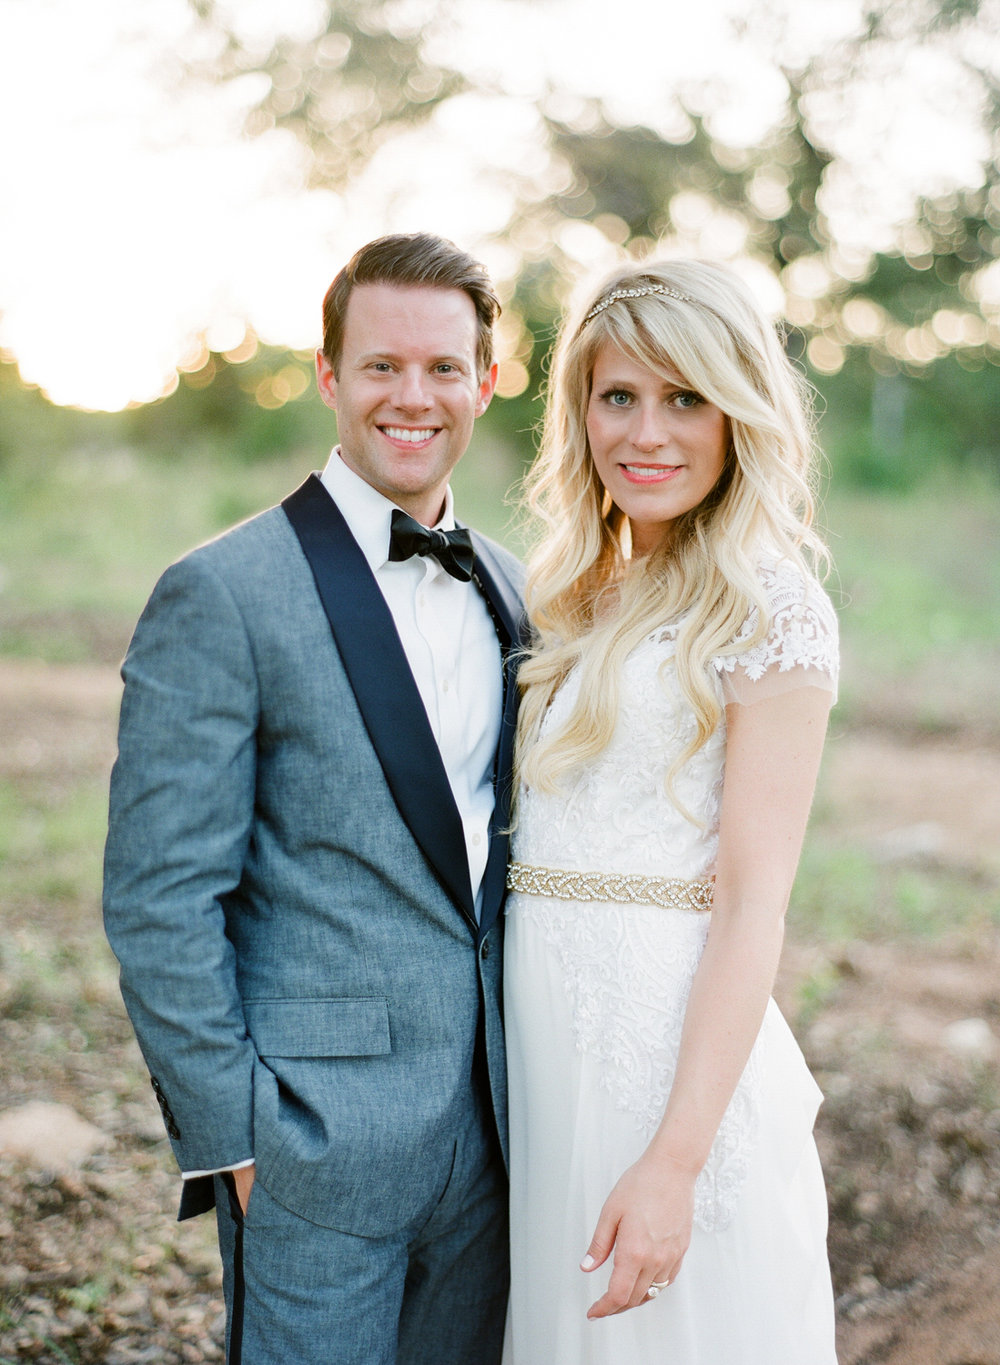 PROSPECT_HOUSE_WEDDING_AUSTIN_TX_BY_MATTHEW_MOORE_PHOTOGRAPHY_00594.jpg